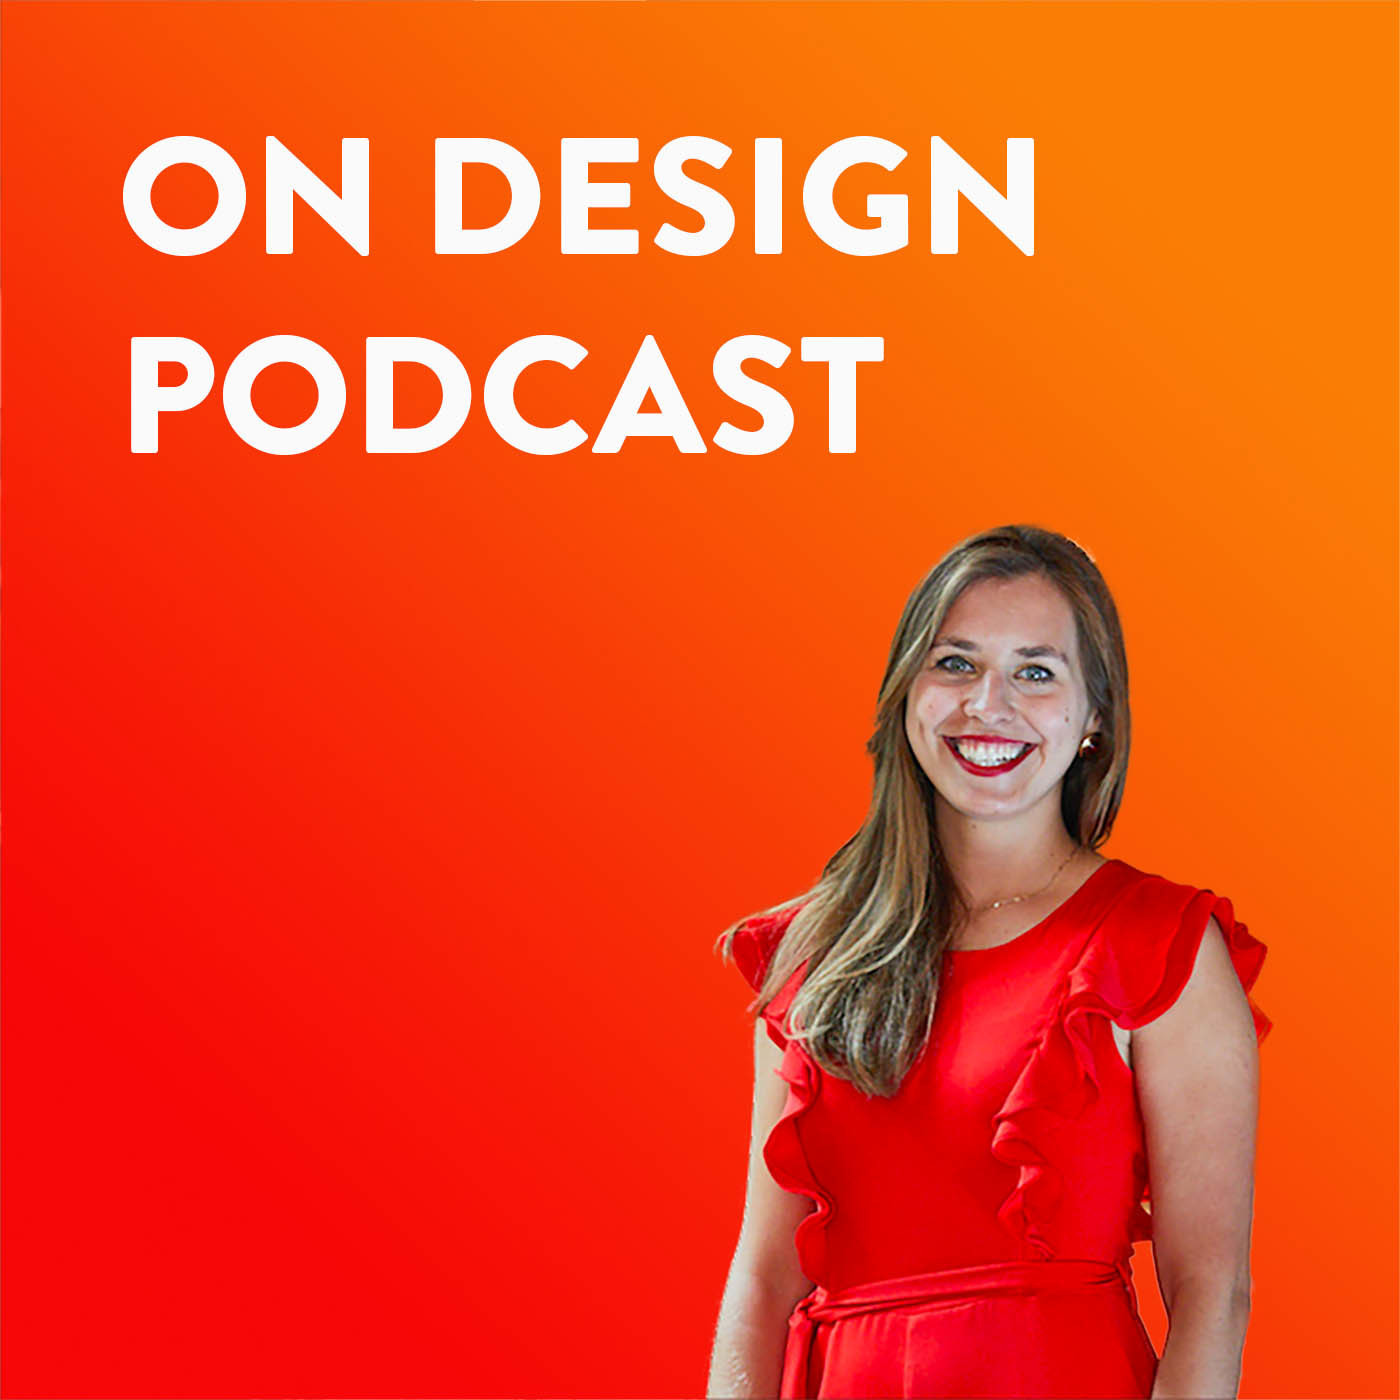 ON DESIGN podcast